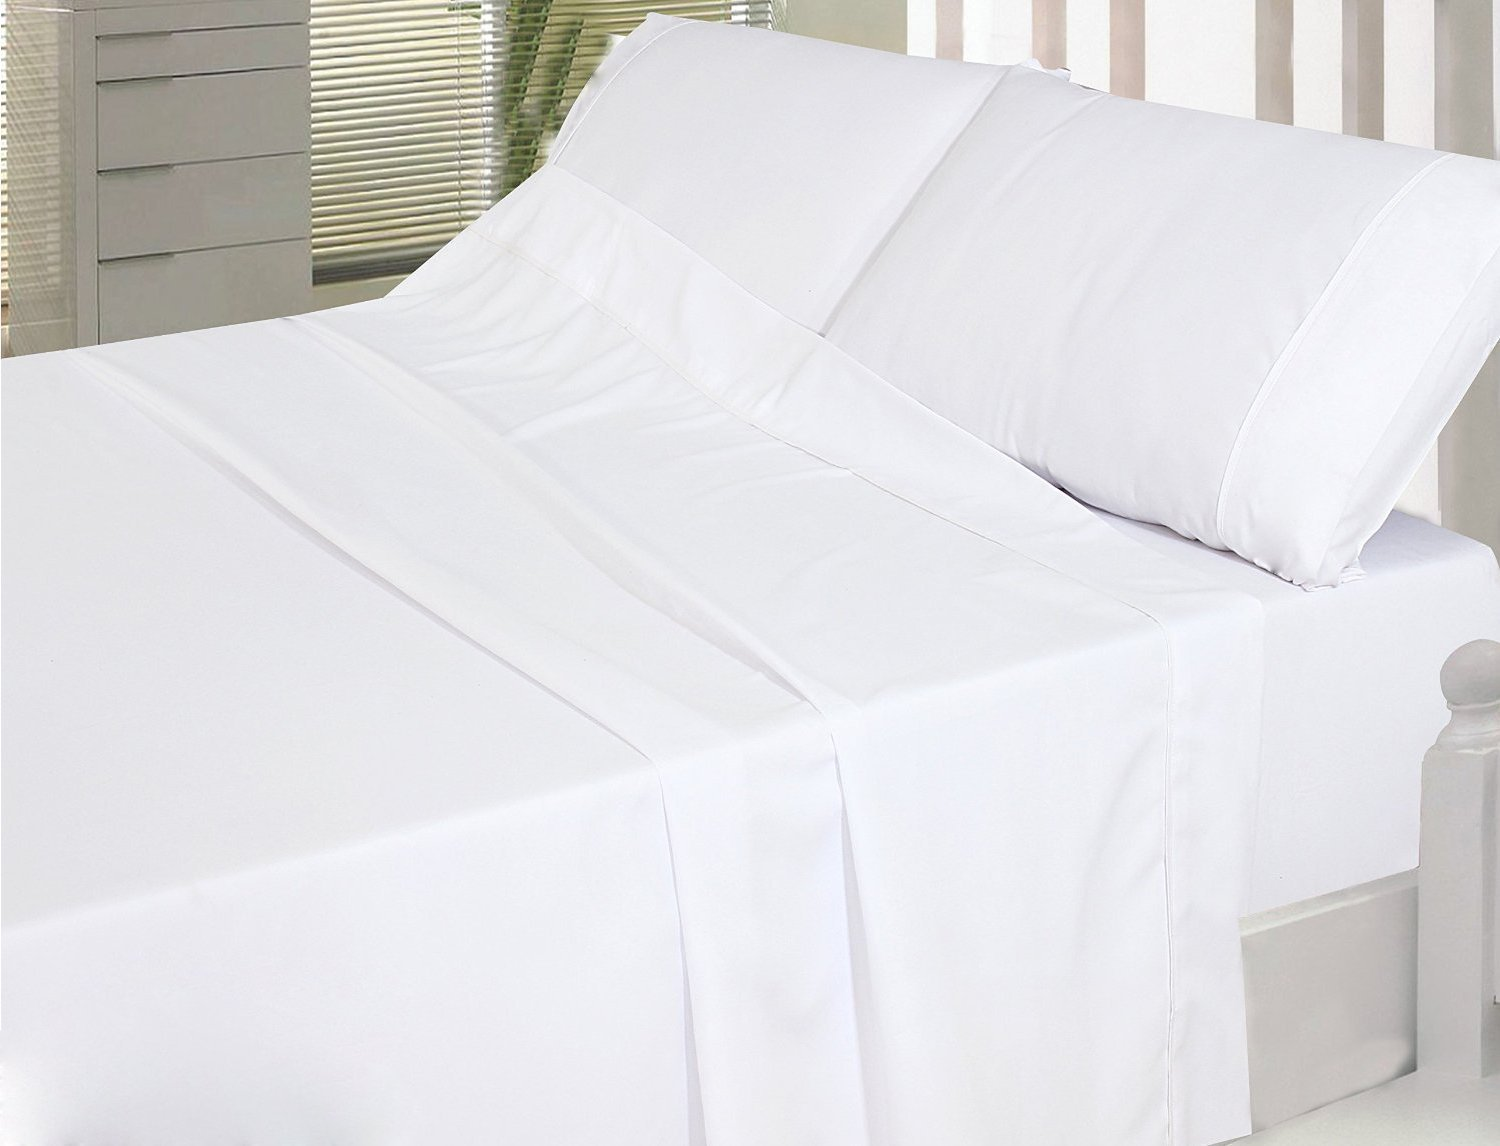 100% Combed Cotton Sateen Bed Sheet Set